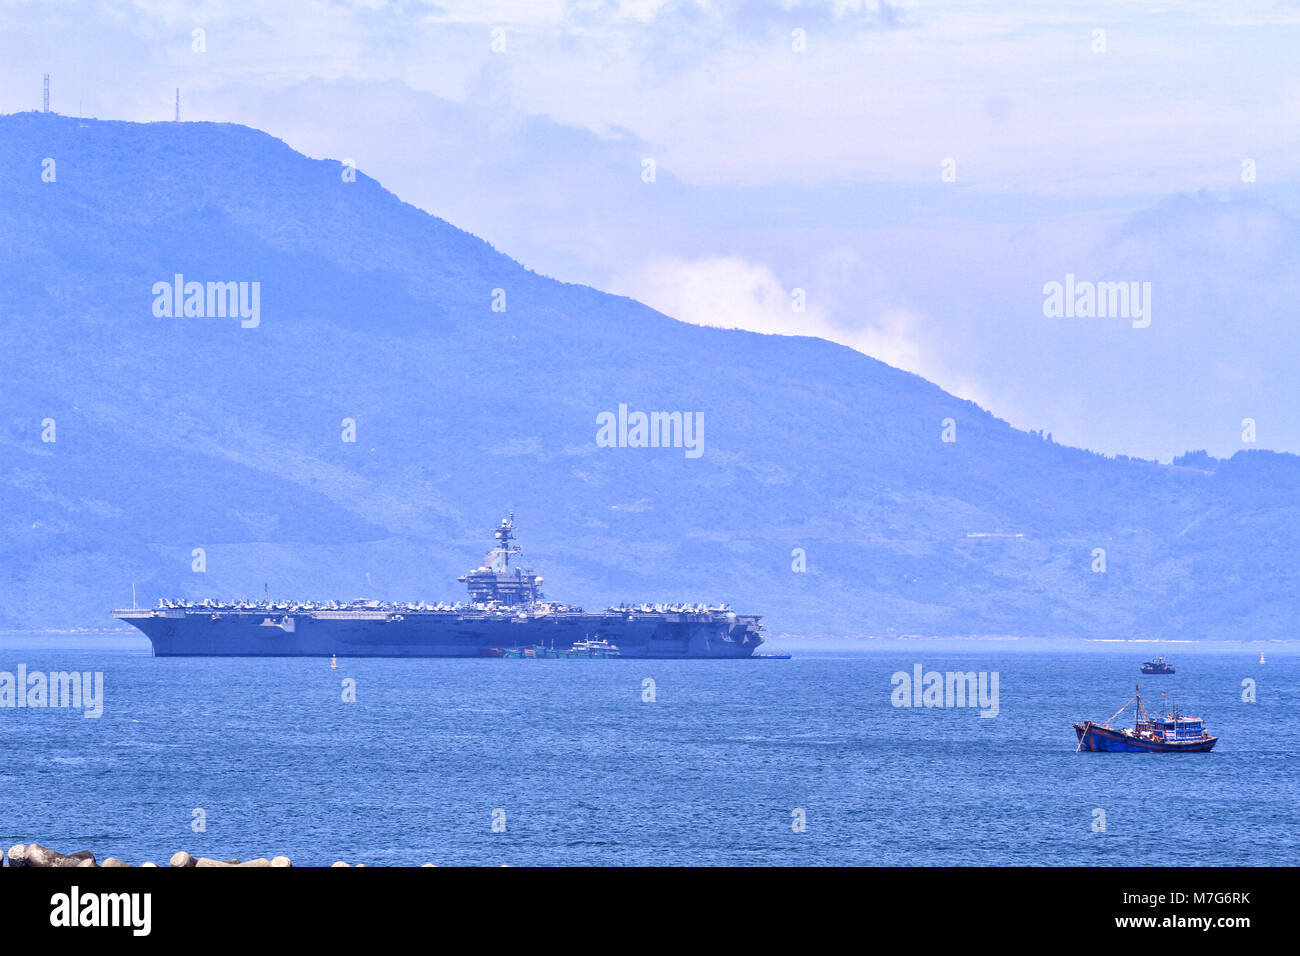 The USS Carl Vinson (CVN-70), the US Navy's nuclear-powered Nimitz-class aircraft carrier, pulls into port in - Stock Image